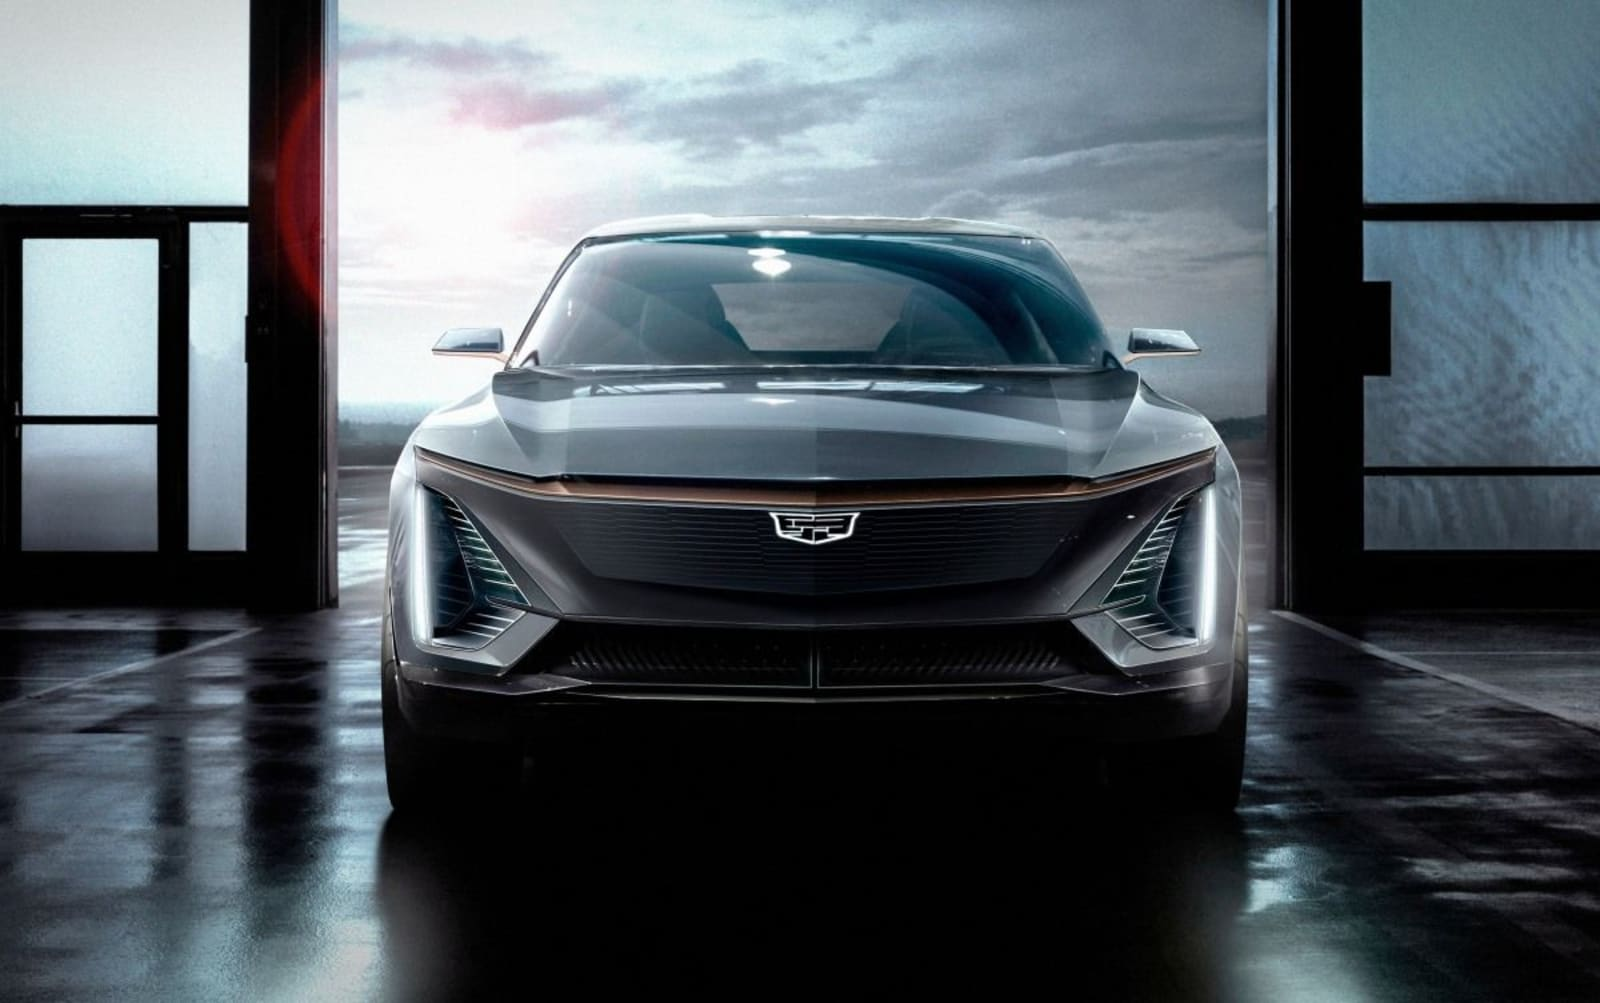 Most Cadillacs will be electric by 2030, says GM